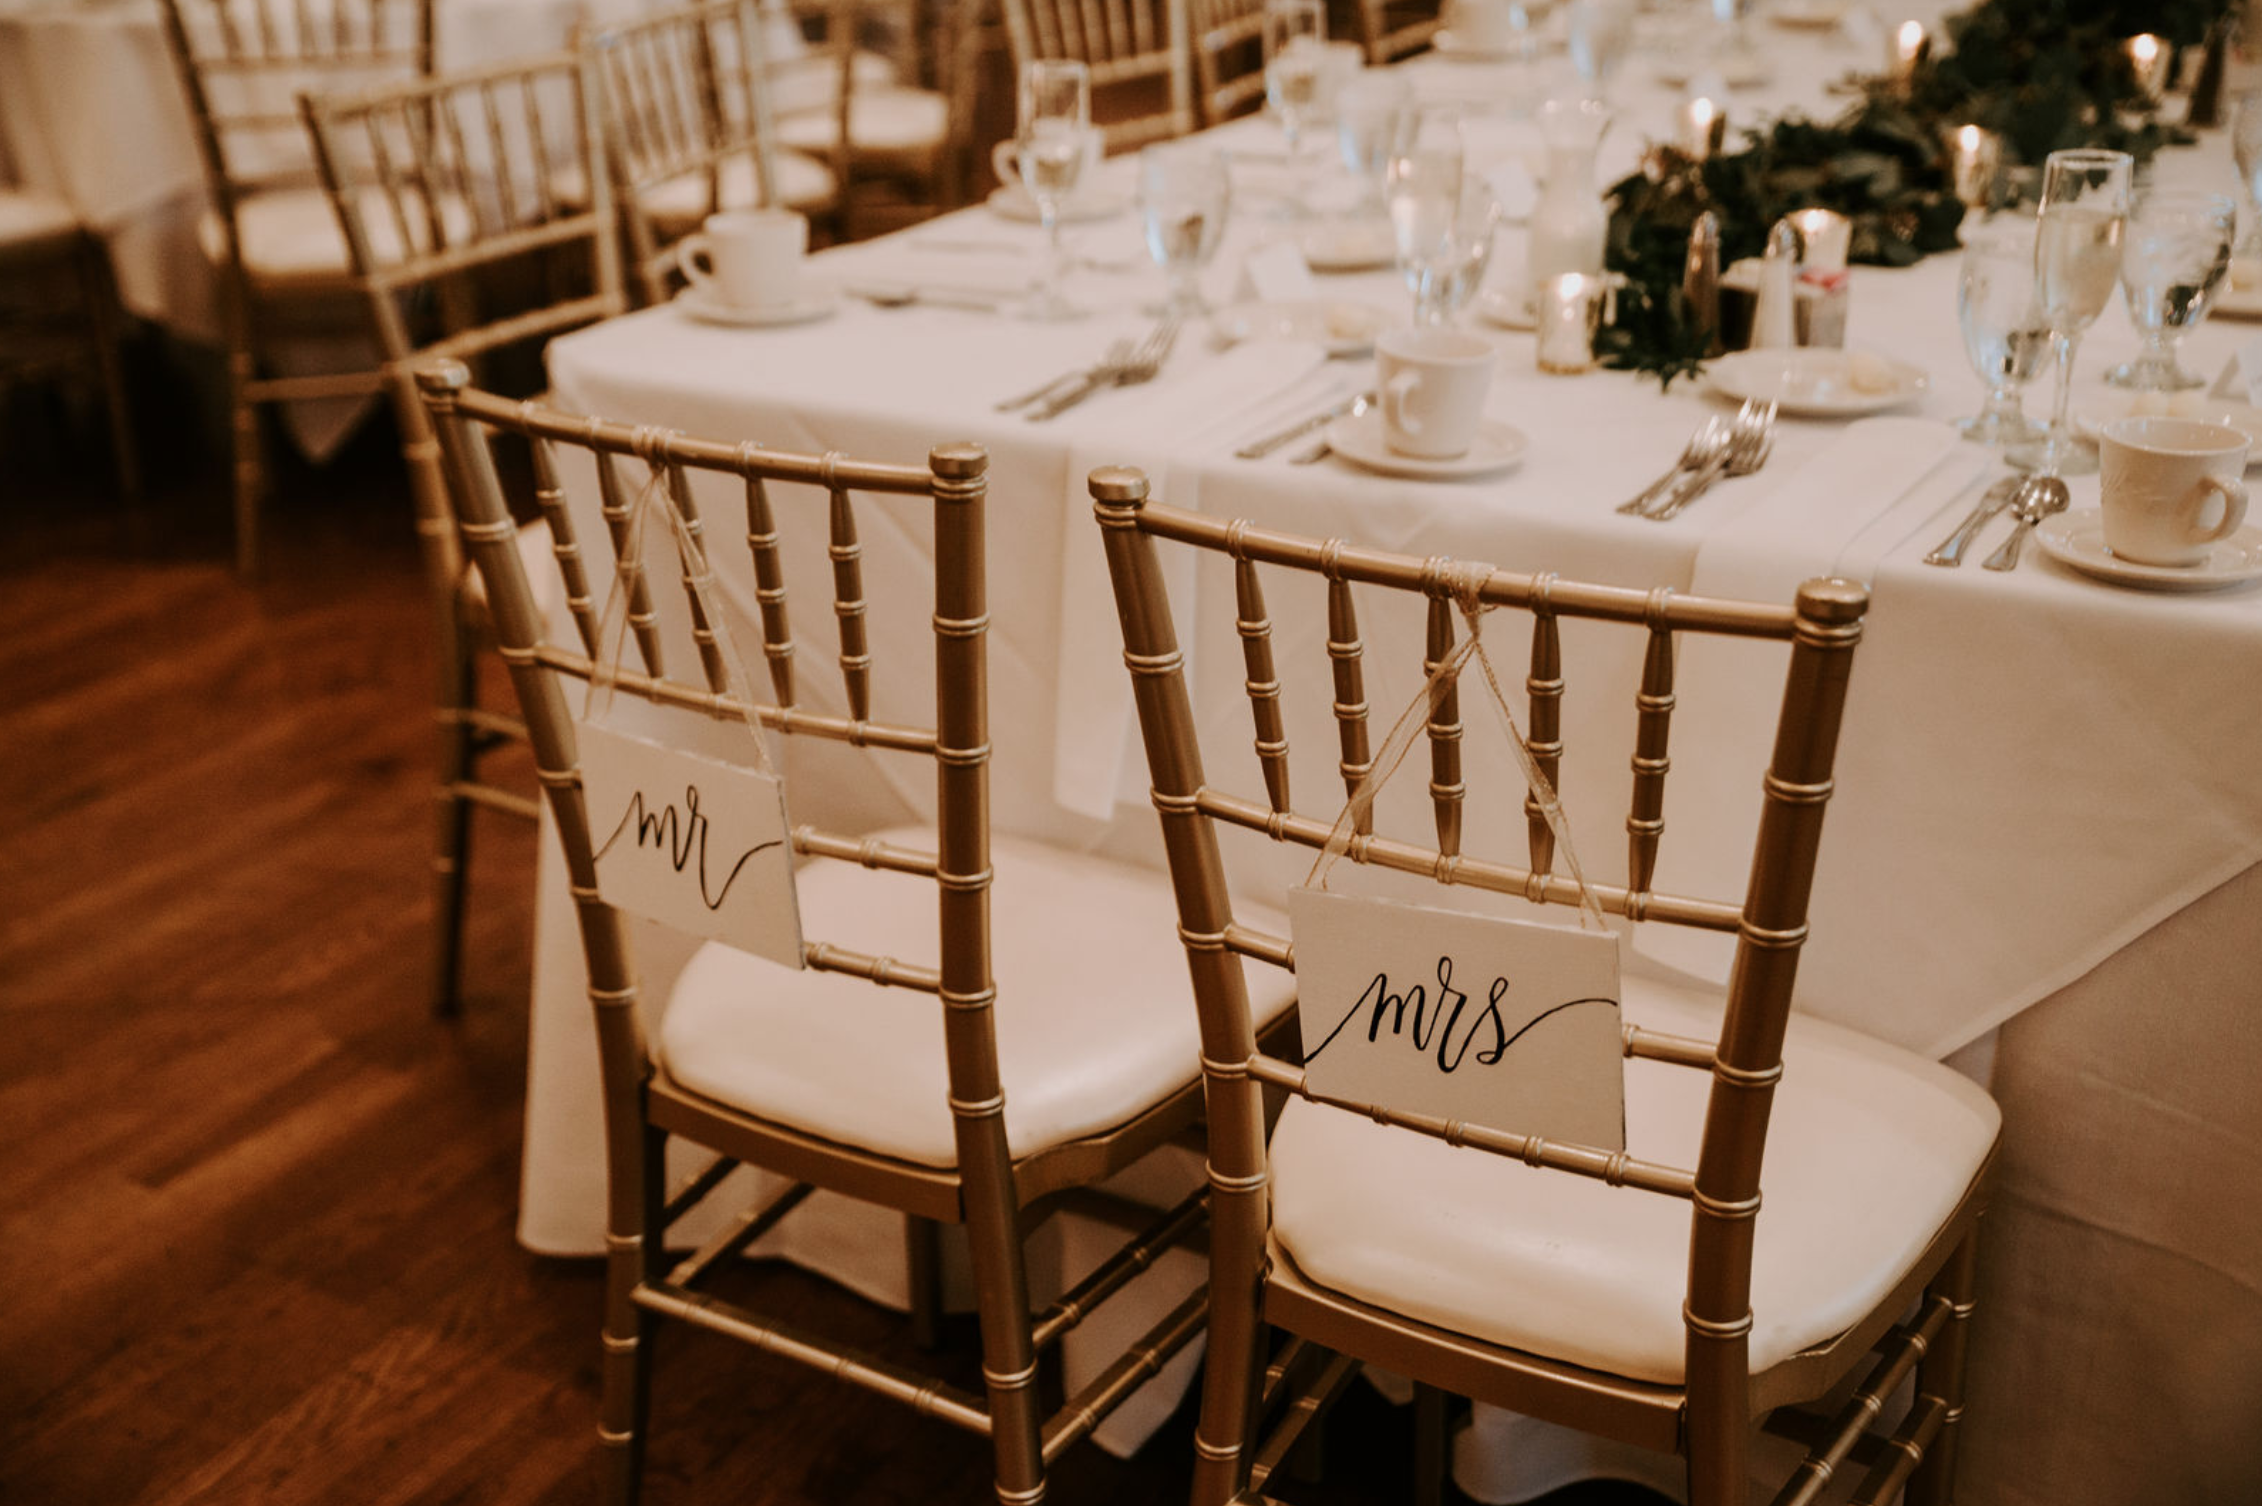 Wedding chair signs at Buffalo, NY wedding planned by Exhale Events. Find more wedding inspiration at exhale-events.com!